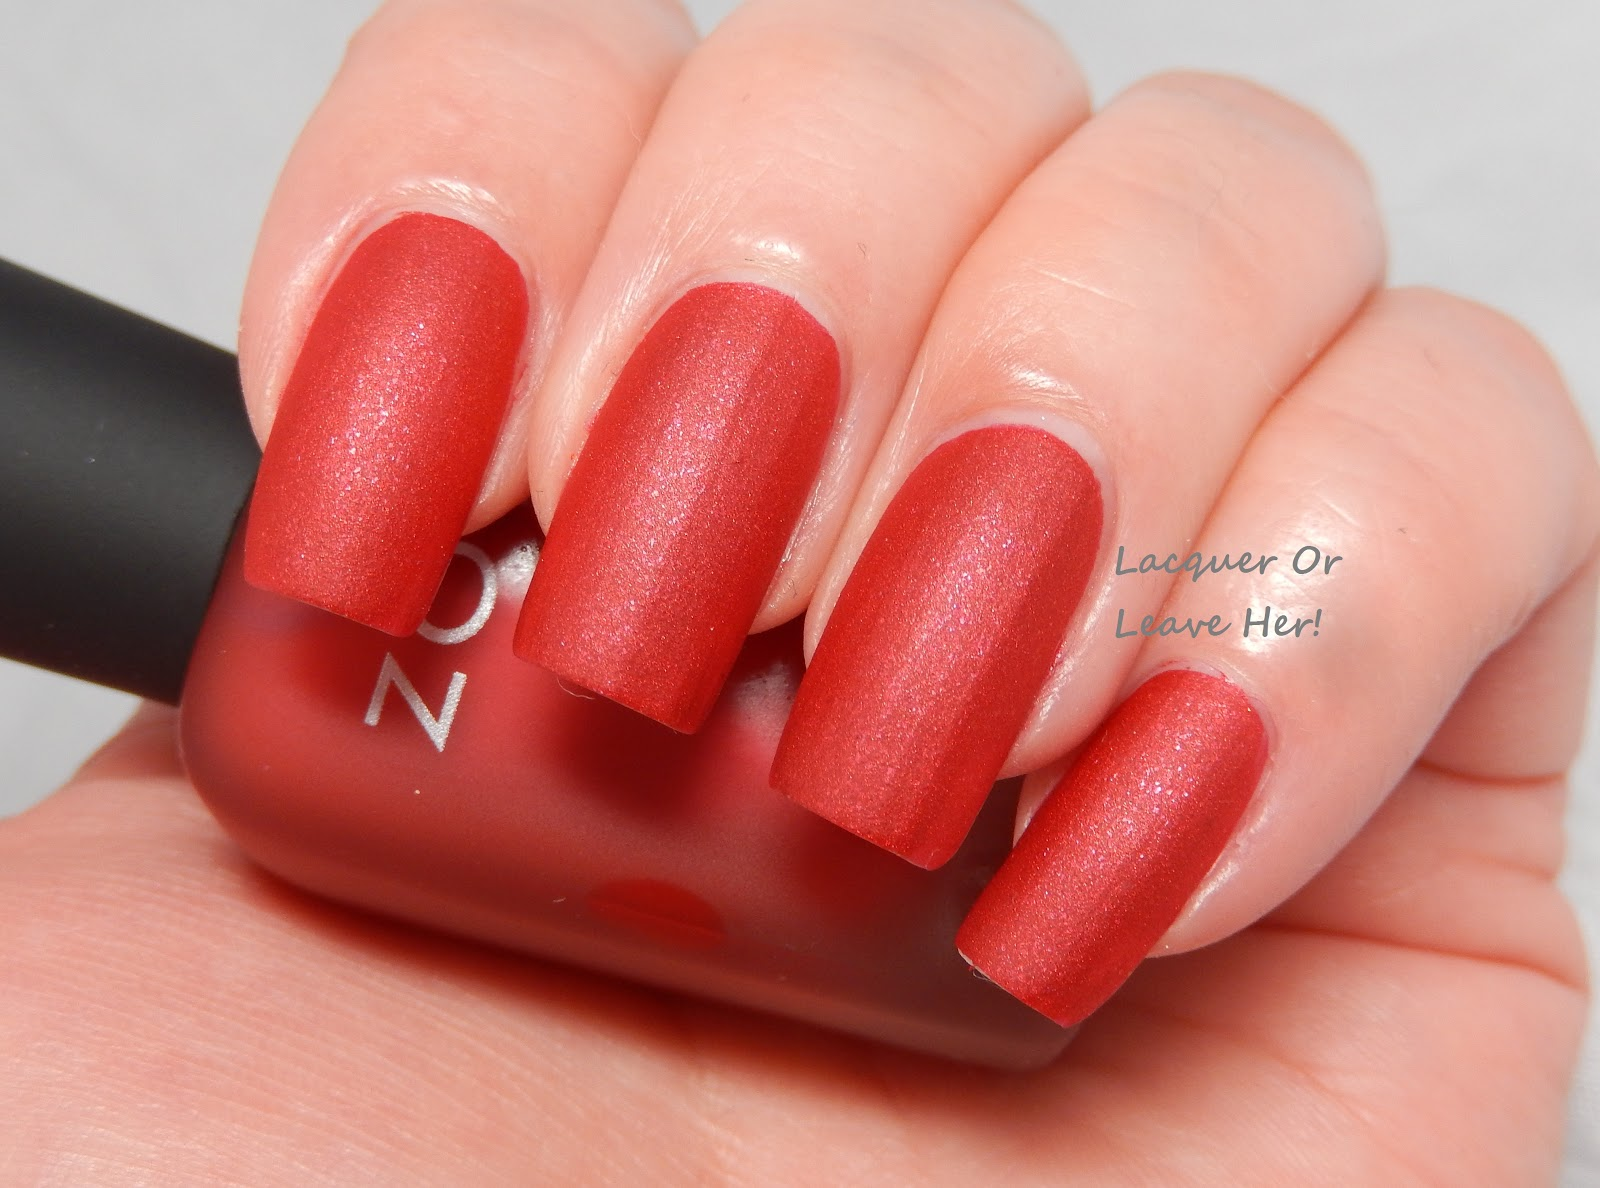 Lacquer Or Leave Her Review Zoya Matte Velvet 2015 Collection